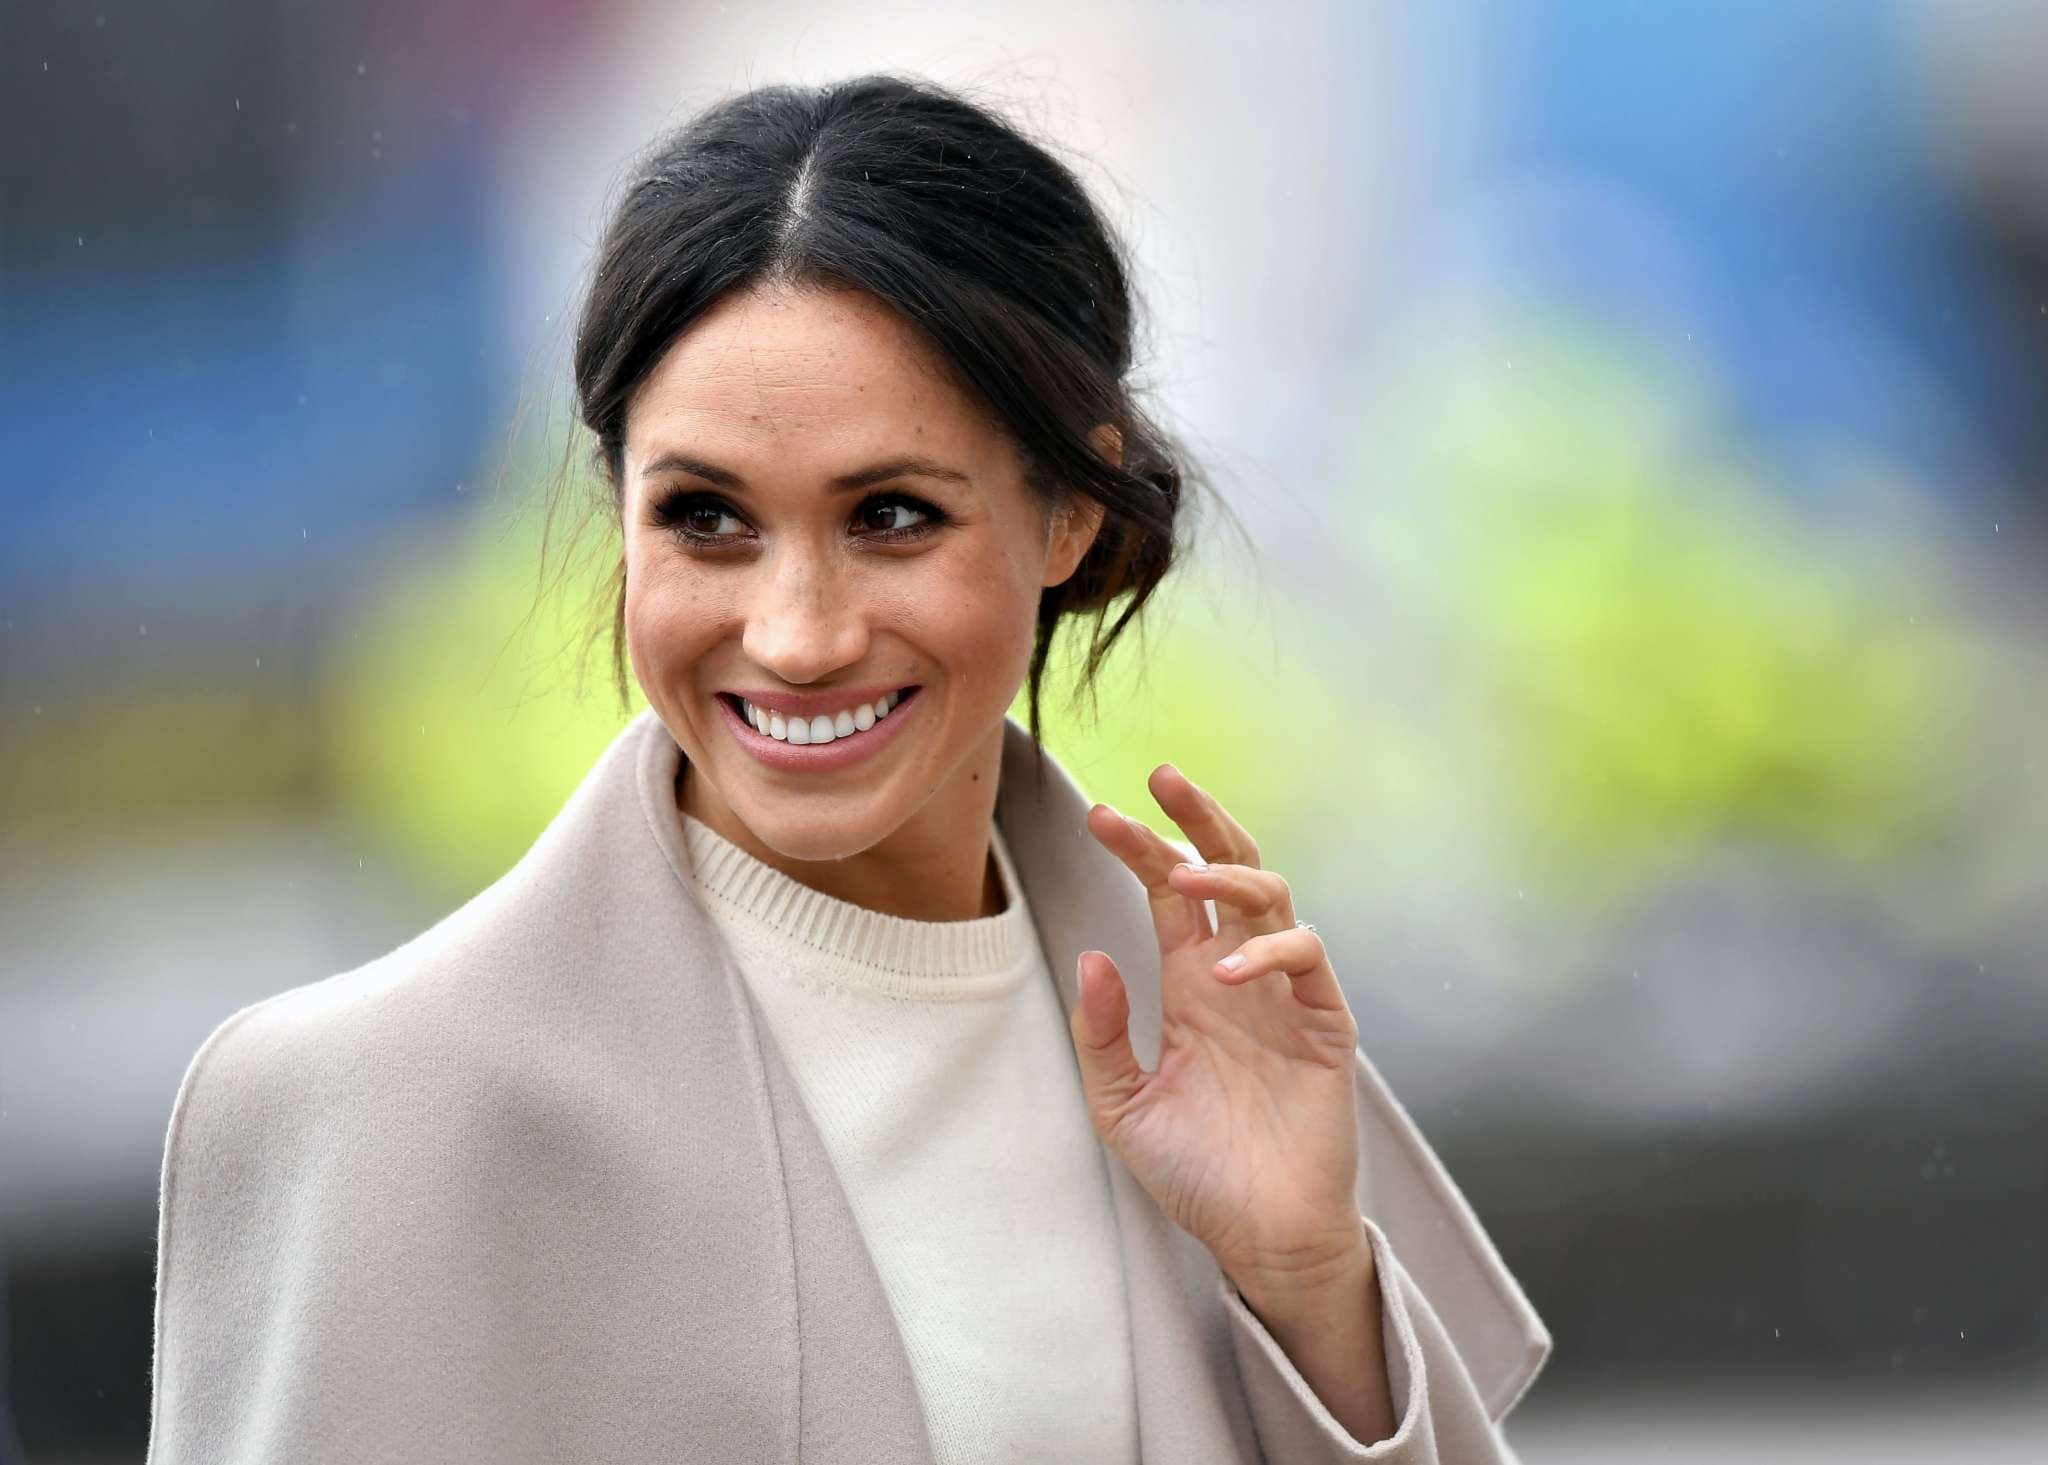 """meghan-markle-says-shes-so-glad-to-be-back-home-in-the-u-s-for-so-many-reasons-shading-her-time-in-the-u-k"""